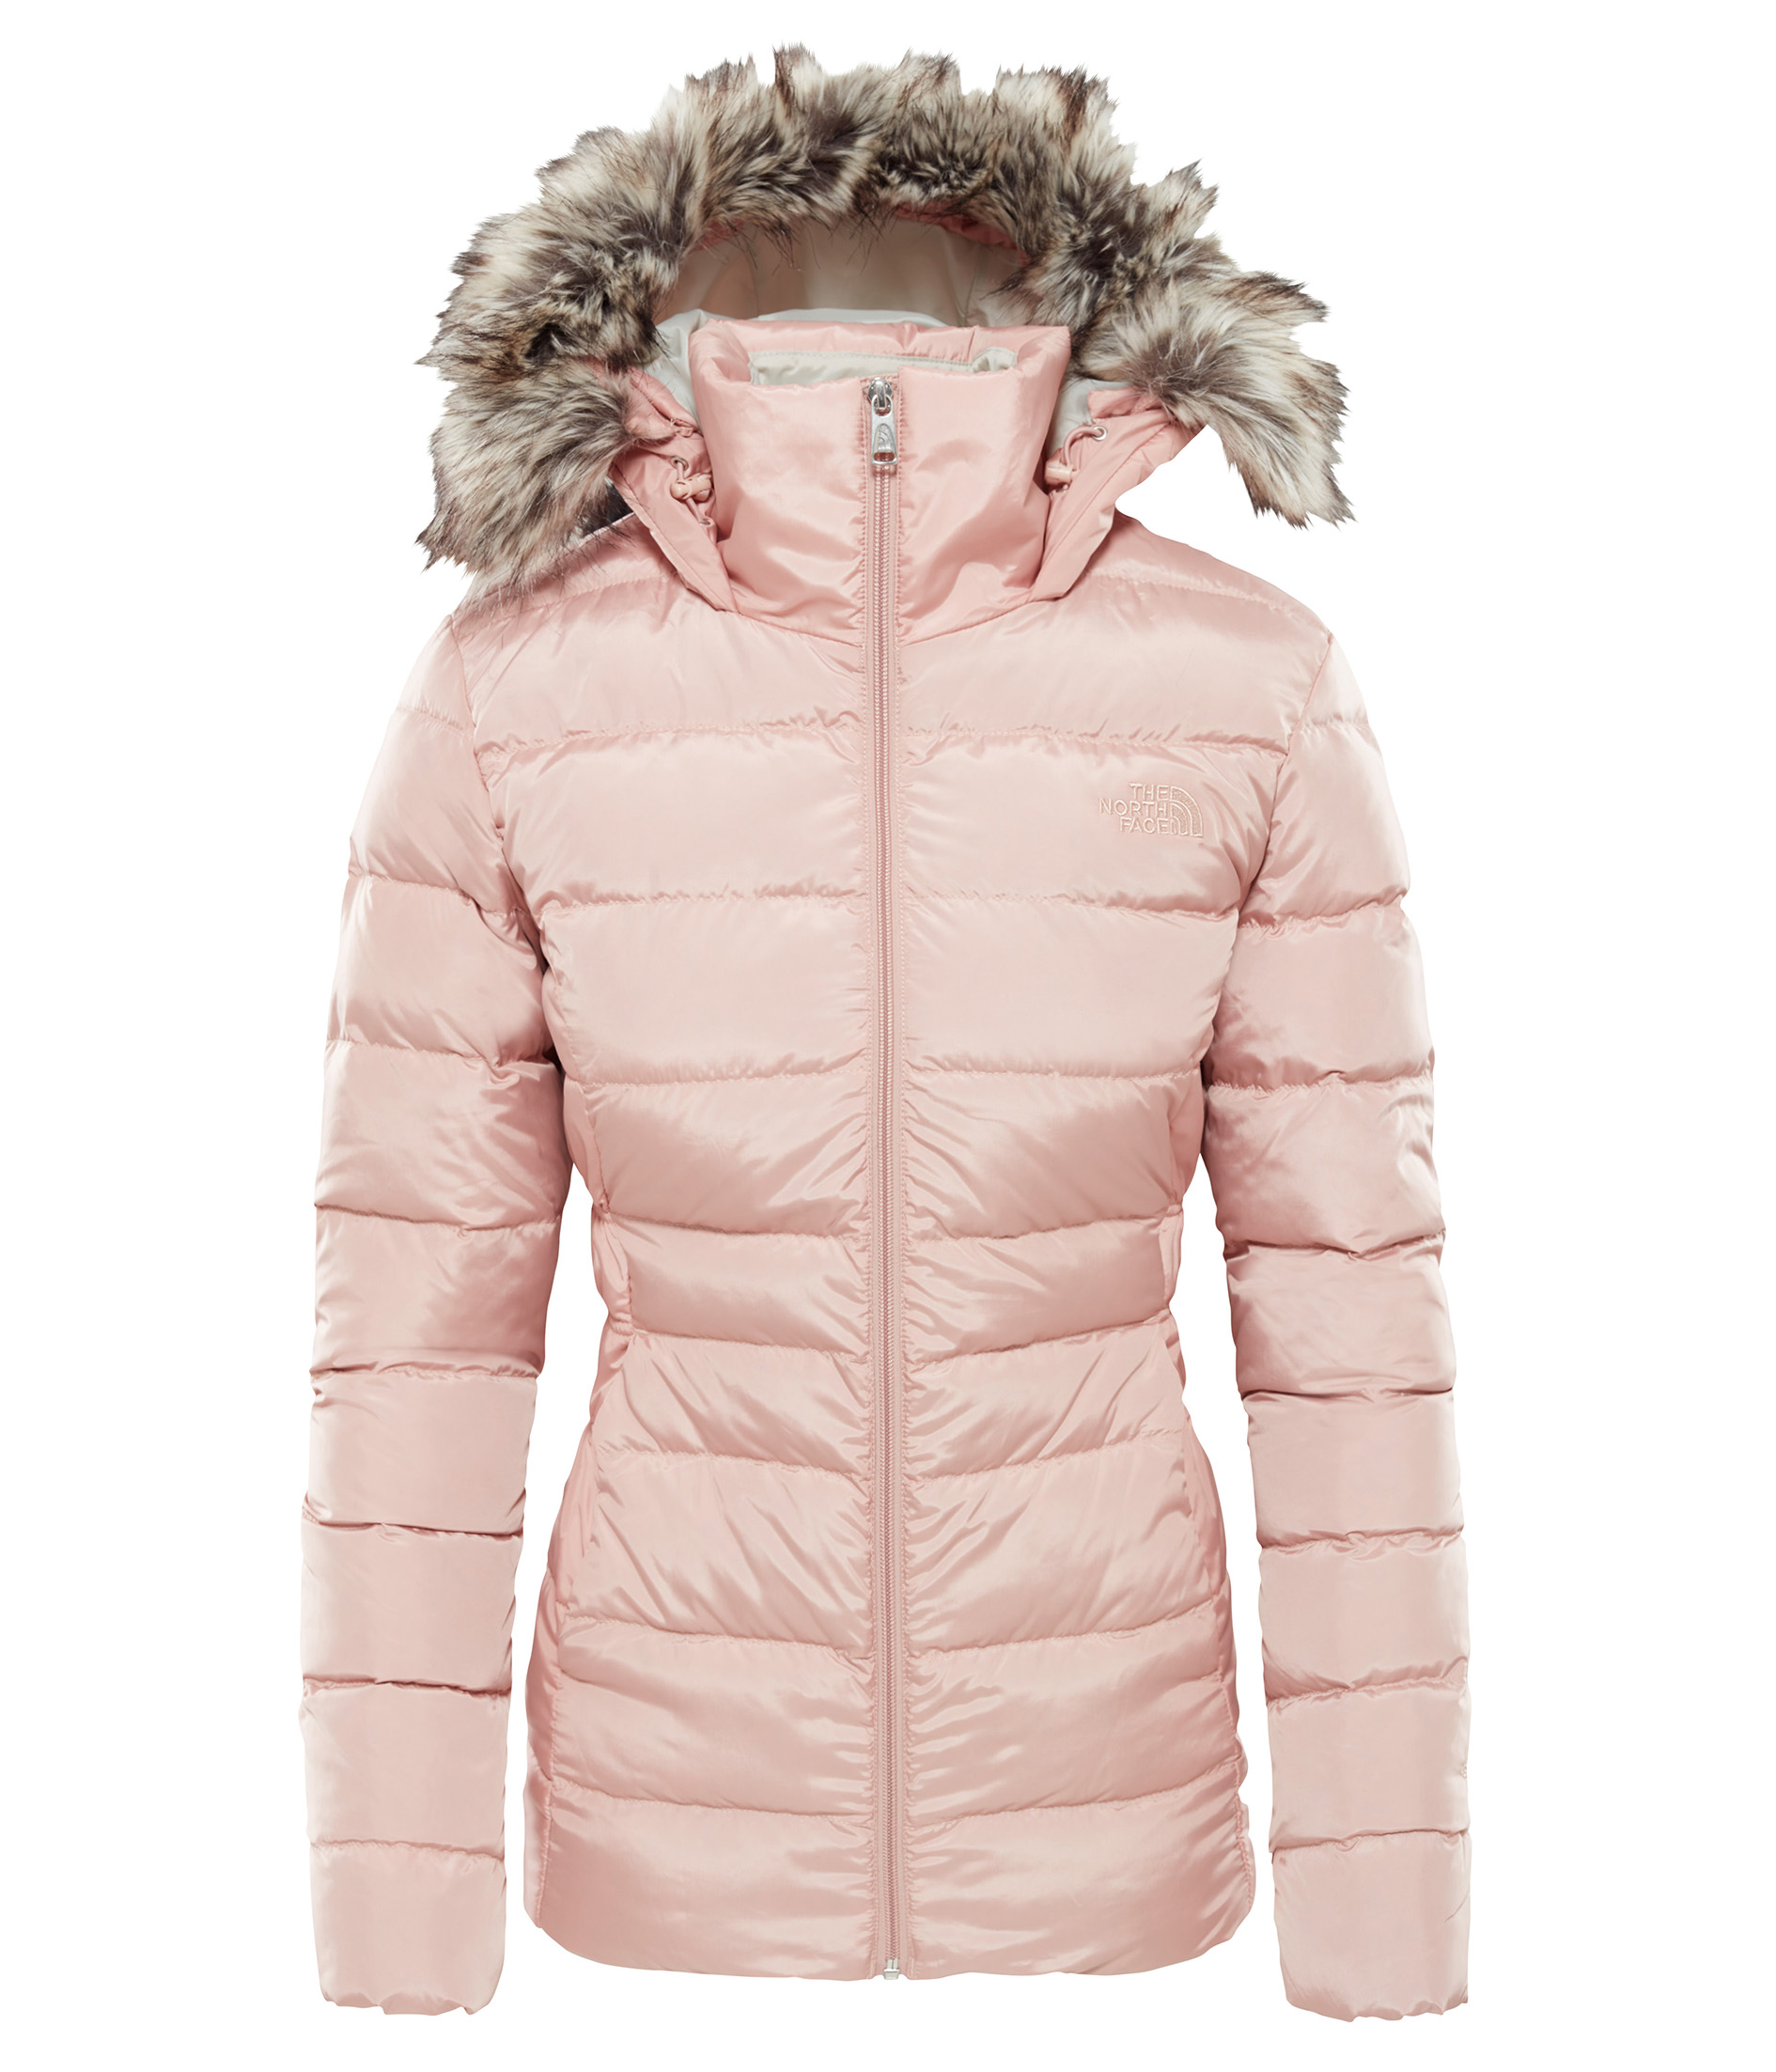 6a91d747bc0 Дамско яке W GOTHAM JKT II MISTY ROSE - The North Face